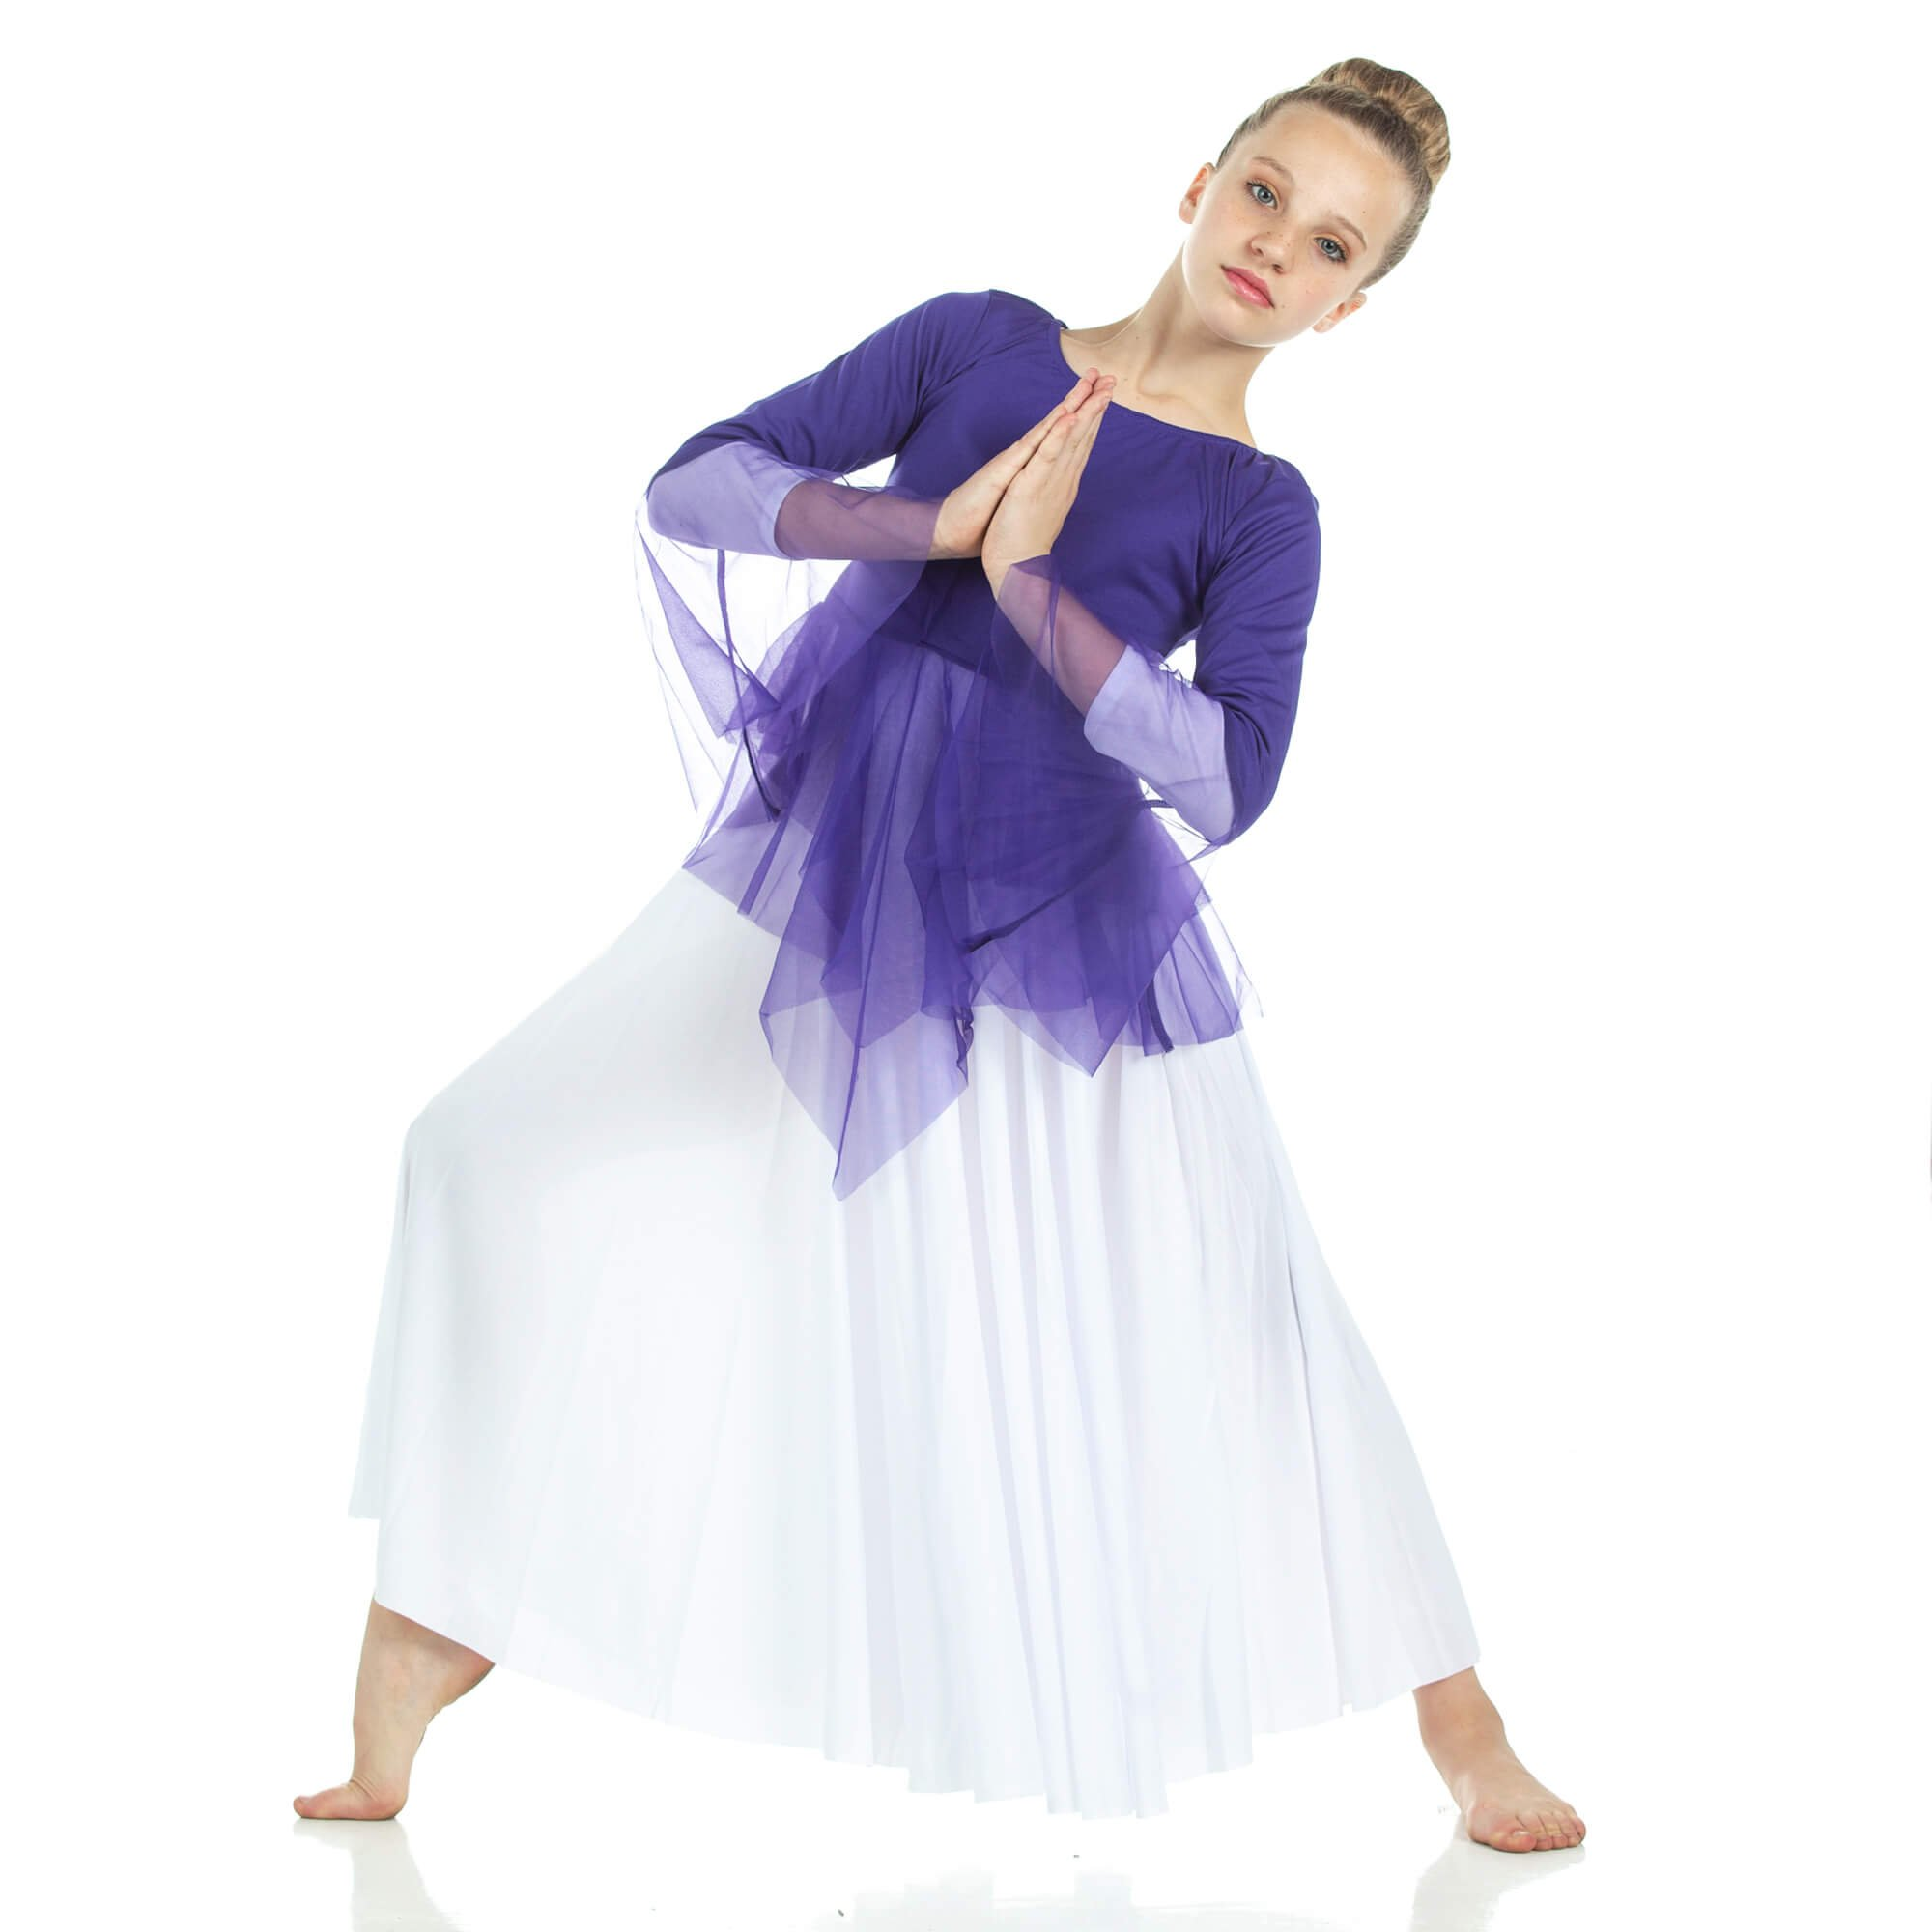 Child Ministry Dance Chiffon Skirted Tunic